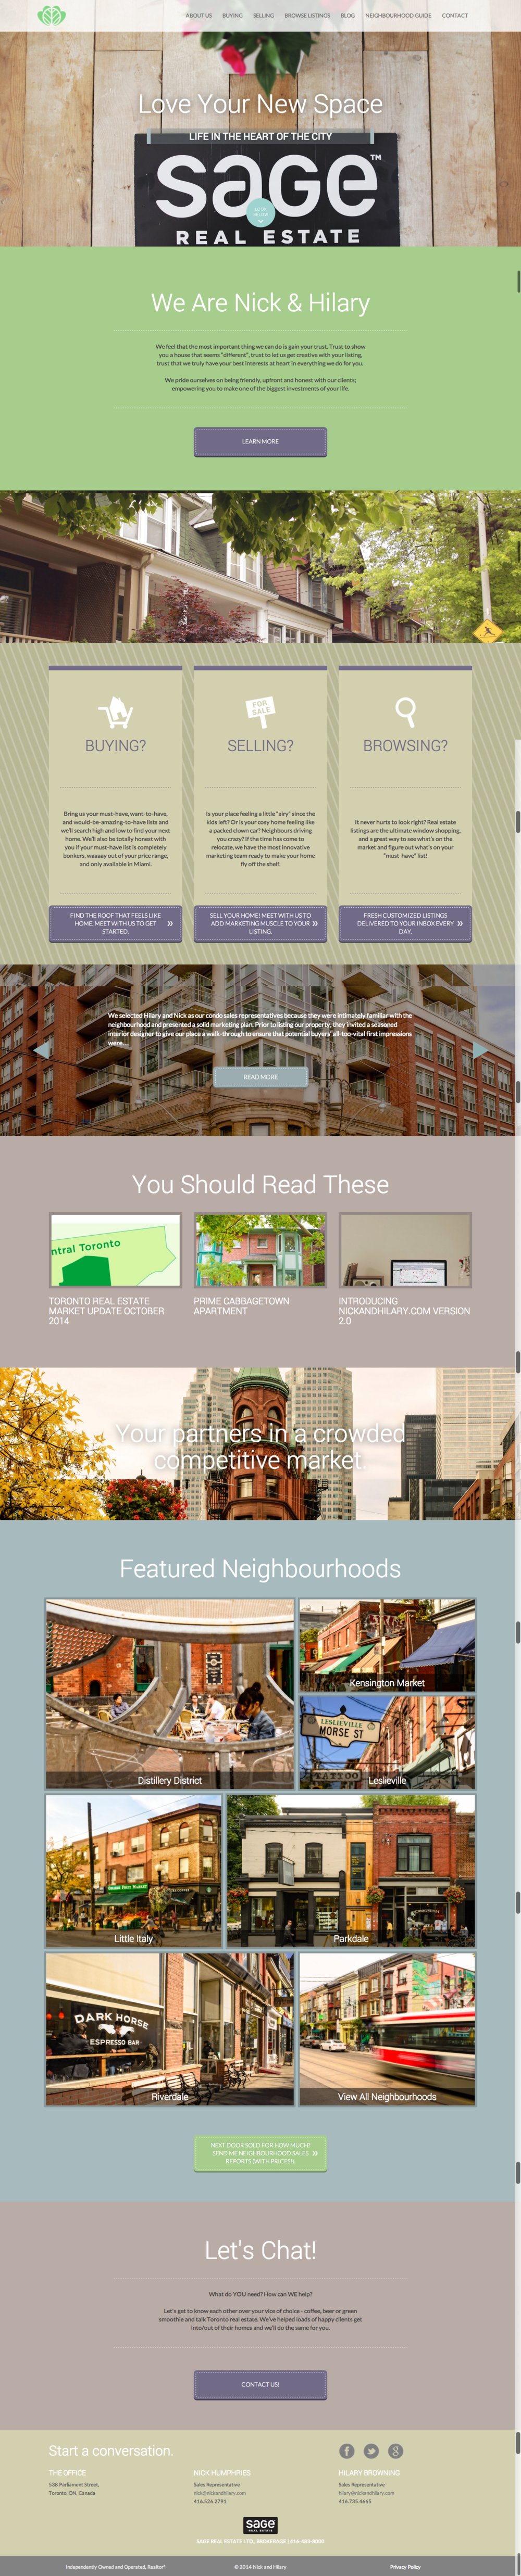 Nick and Hilary Real Estate Website.png